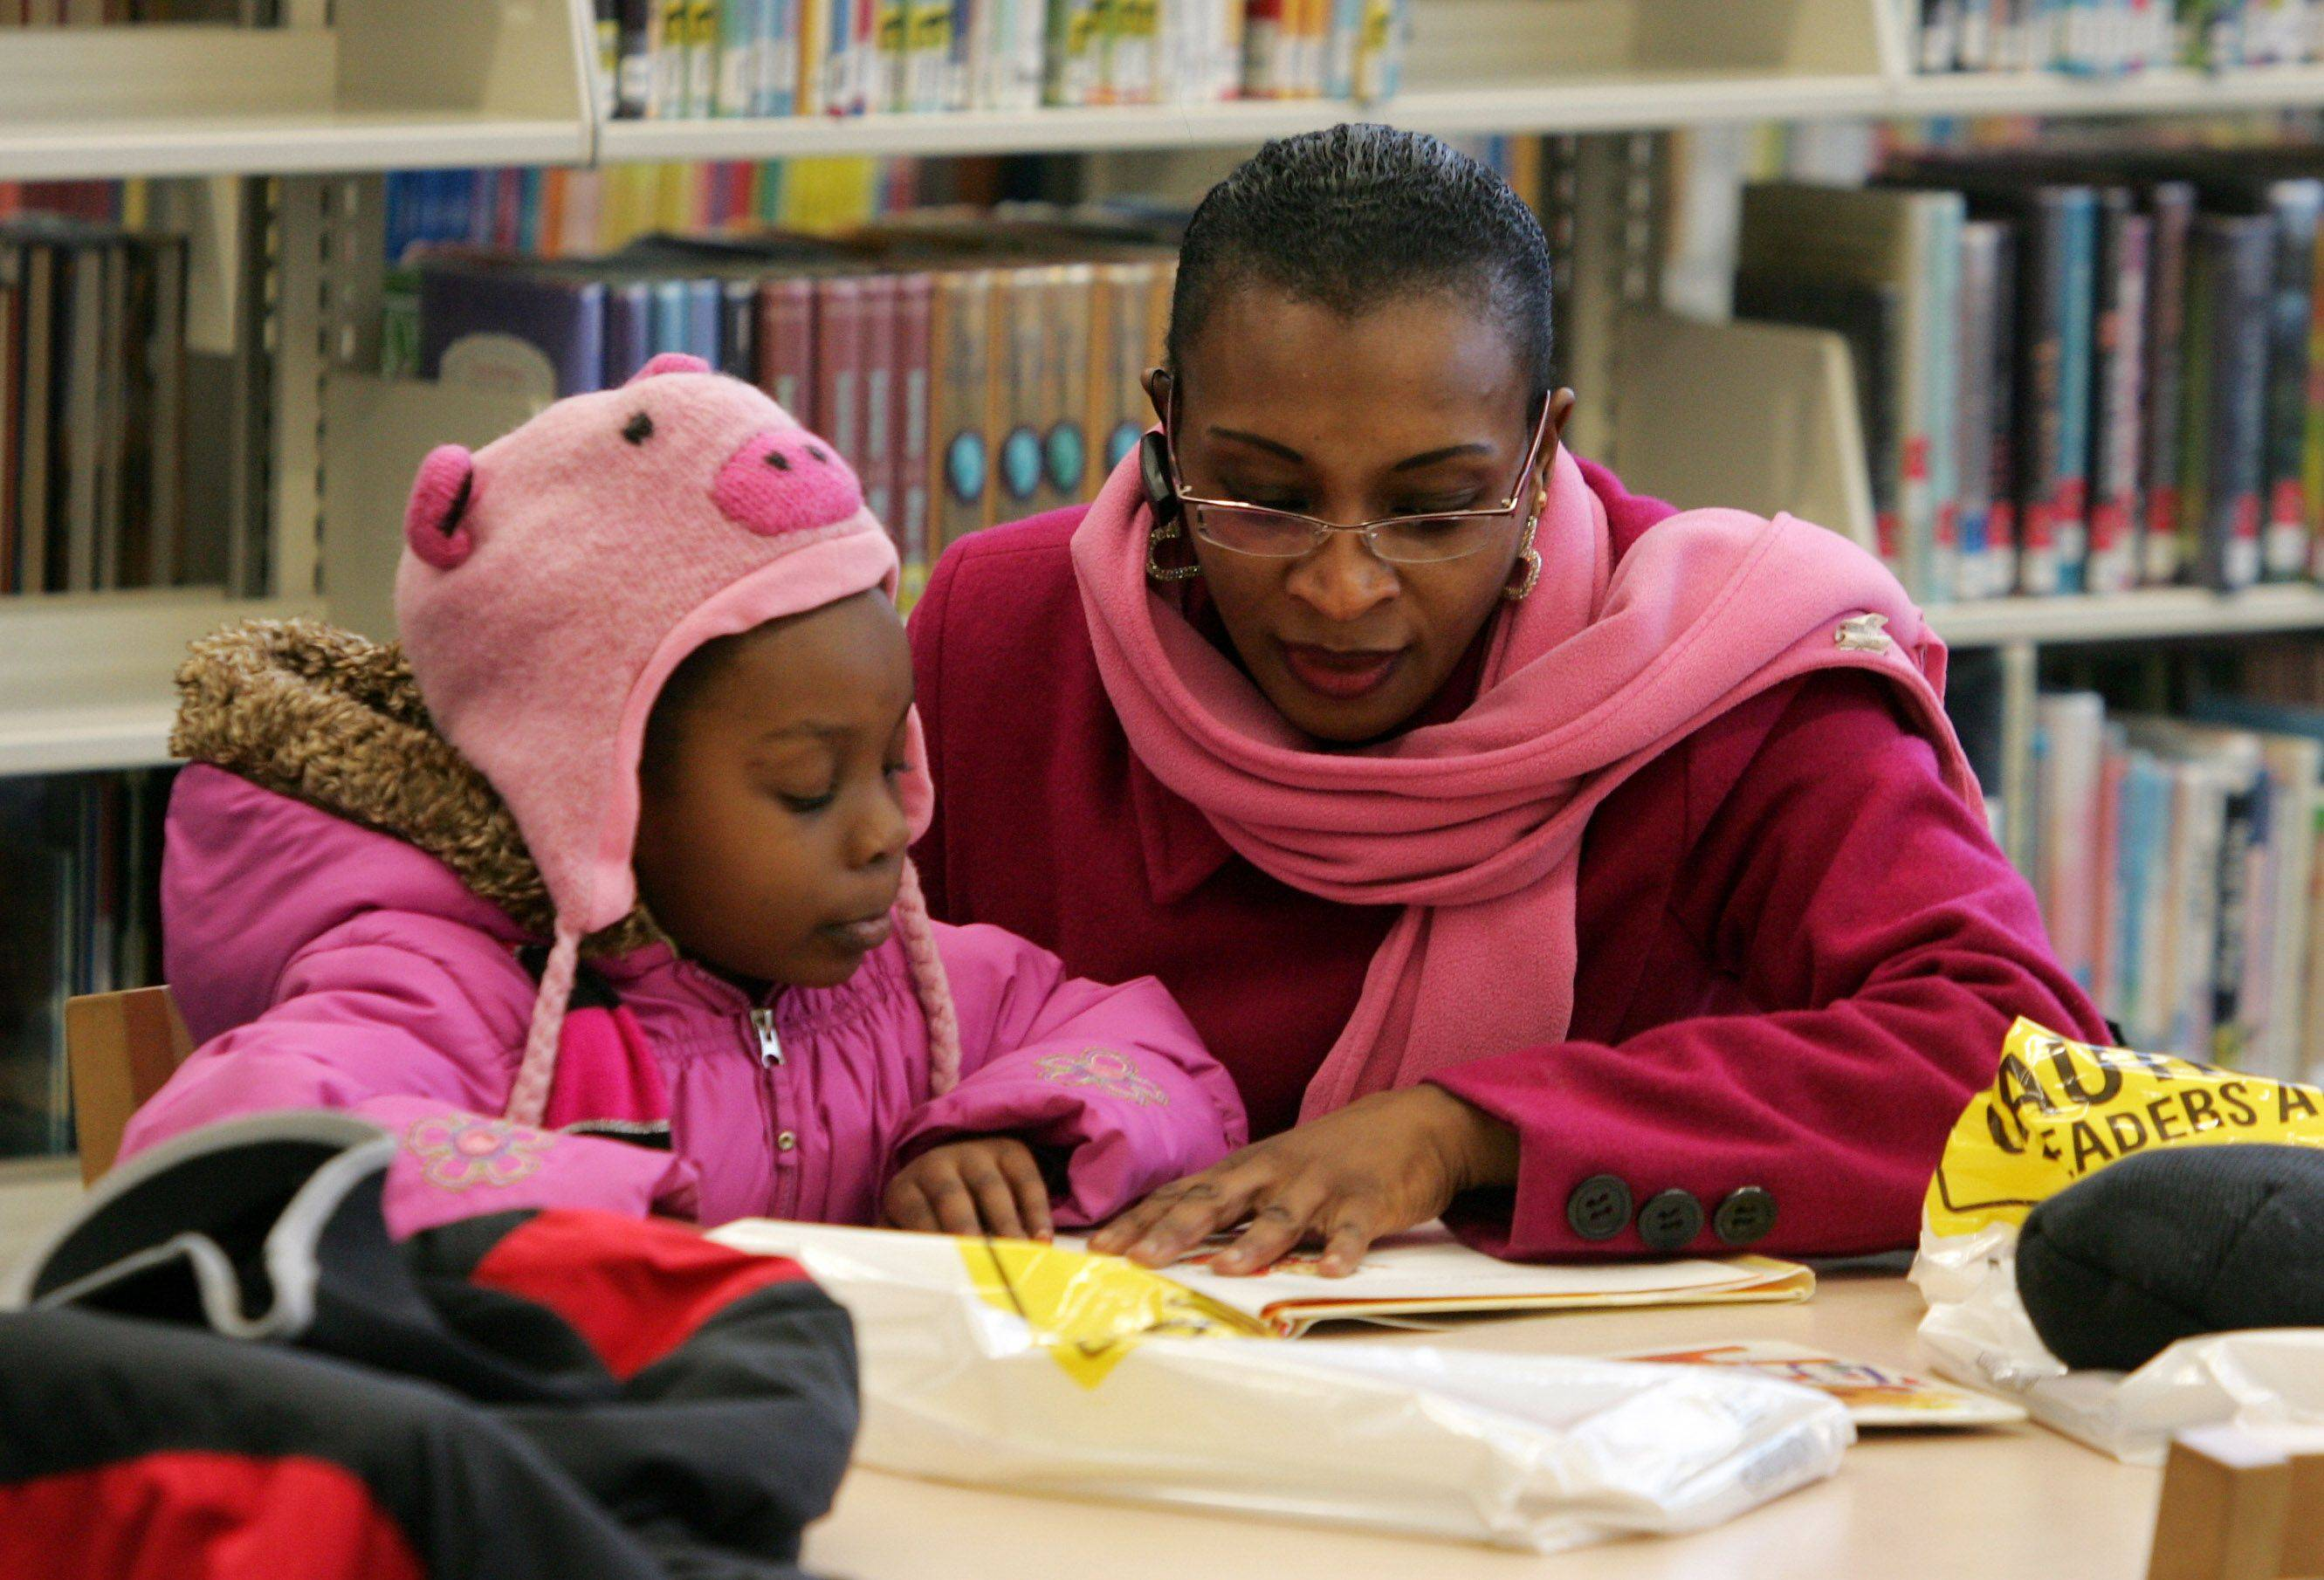 Tayseer Ibrahim, of Gurnee, reads to her 5-year-old daughter, Syriana Ugwu, in the juvenile section during the grand reopening celebration Sunday at the Warren-Newport Public Library in Gurnee.